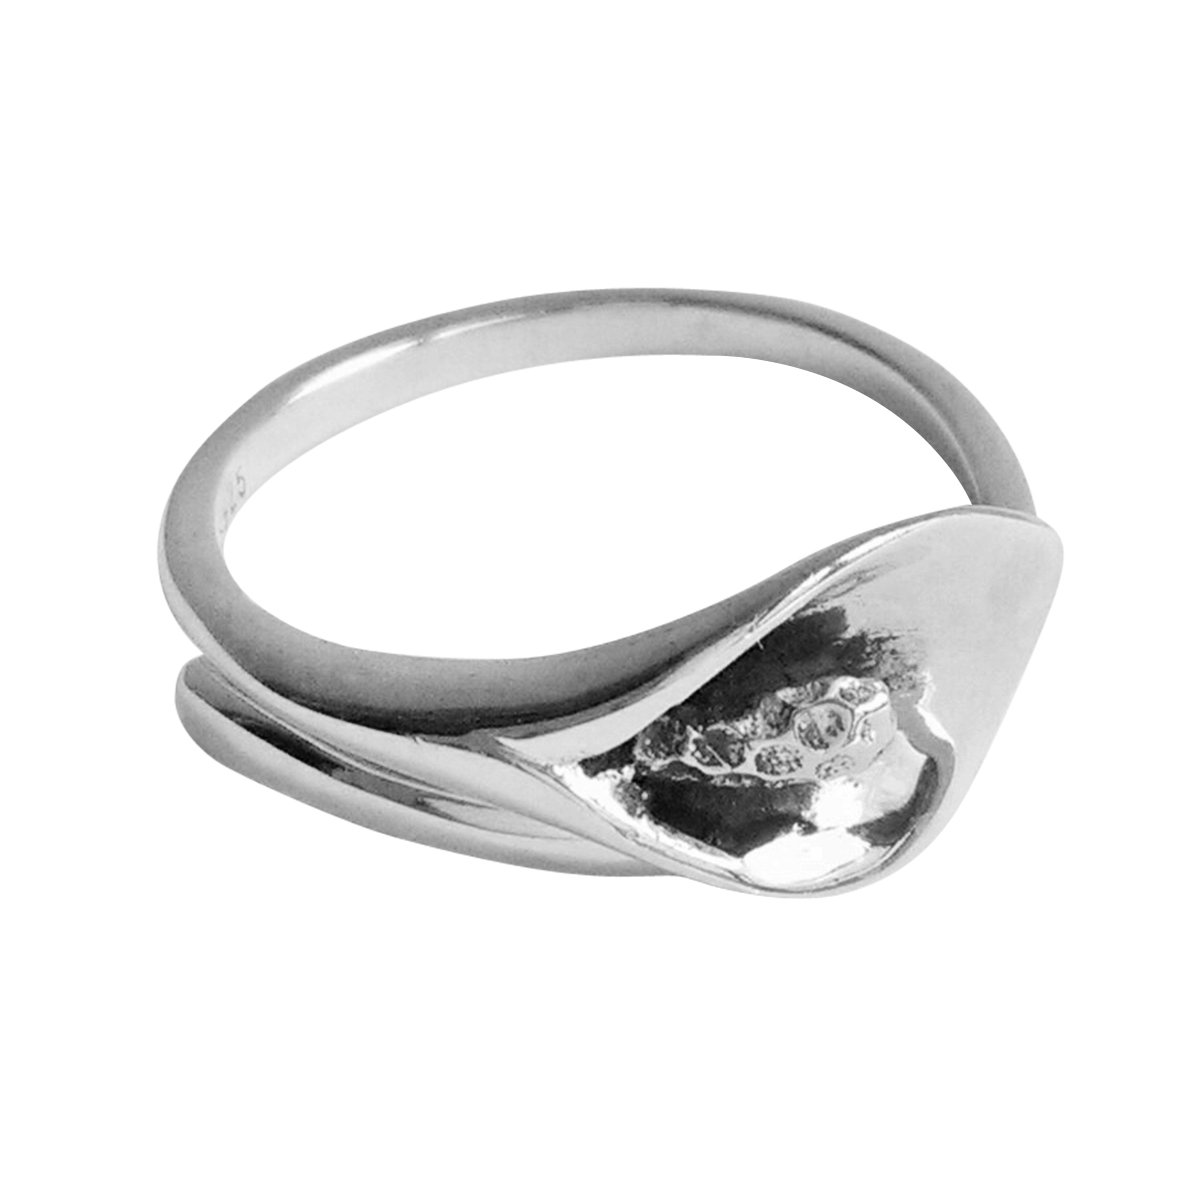 Rings Silver 925 For Women Girls Band Antique Her With Stamp Sensitive Skin Calla Lily Flower Vintage Genuine Sterling